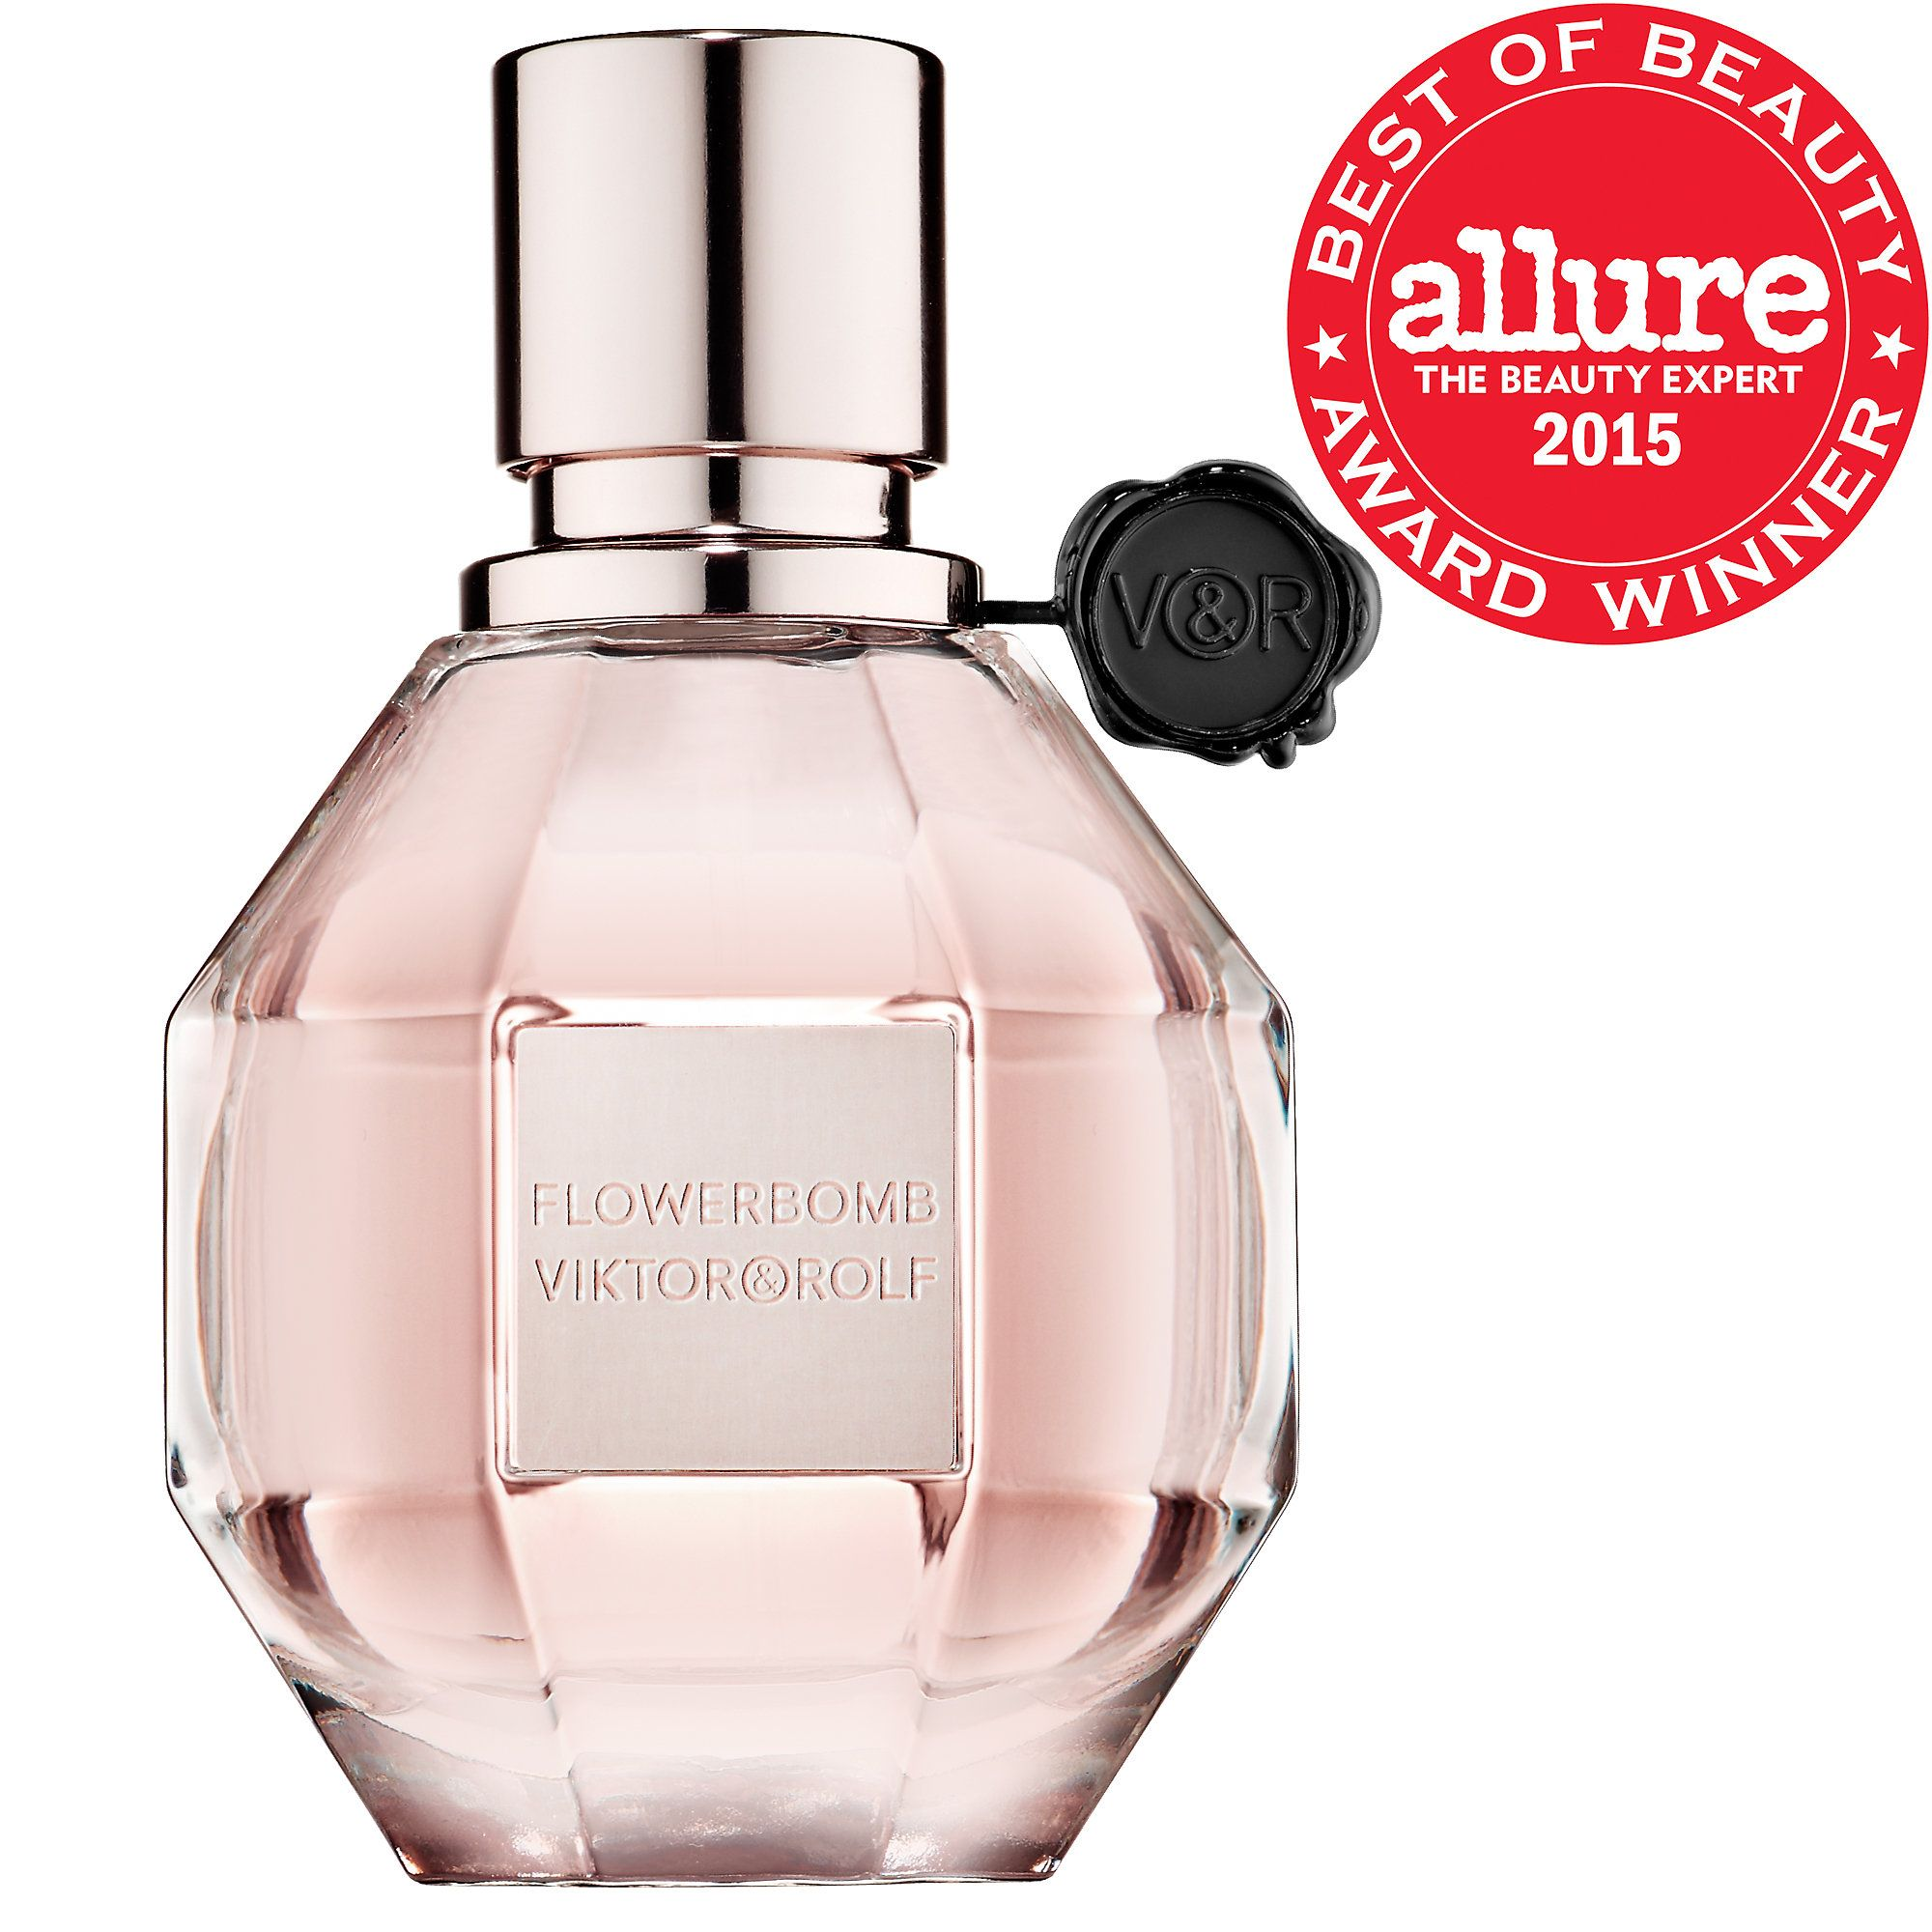 Viktor Rolf Flowerbomb Perfume Is A Floral Explosion With The